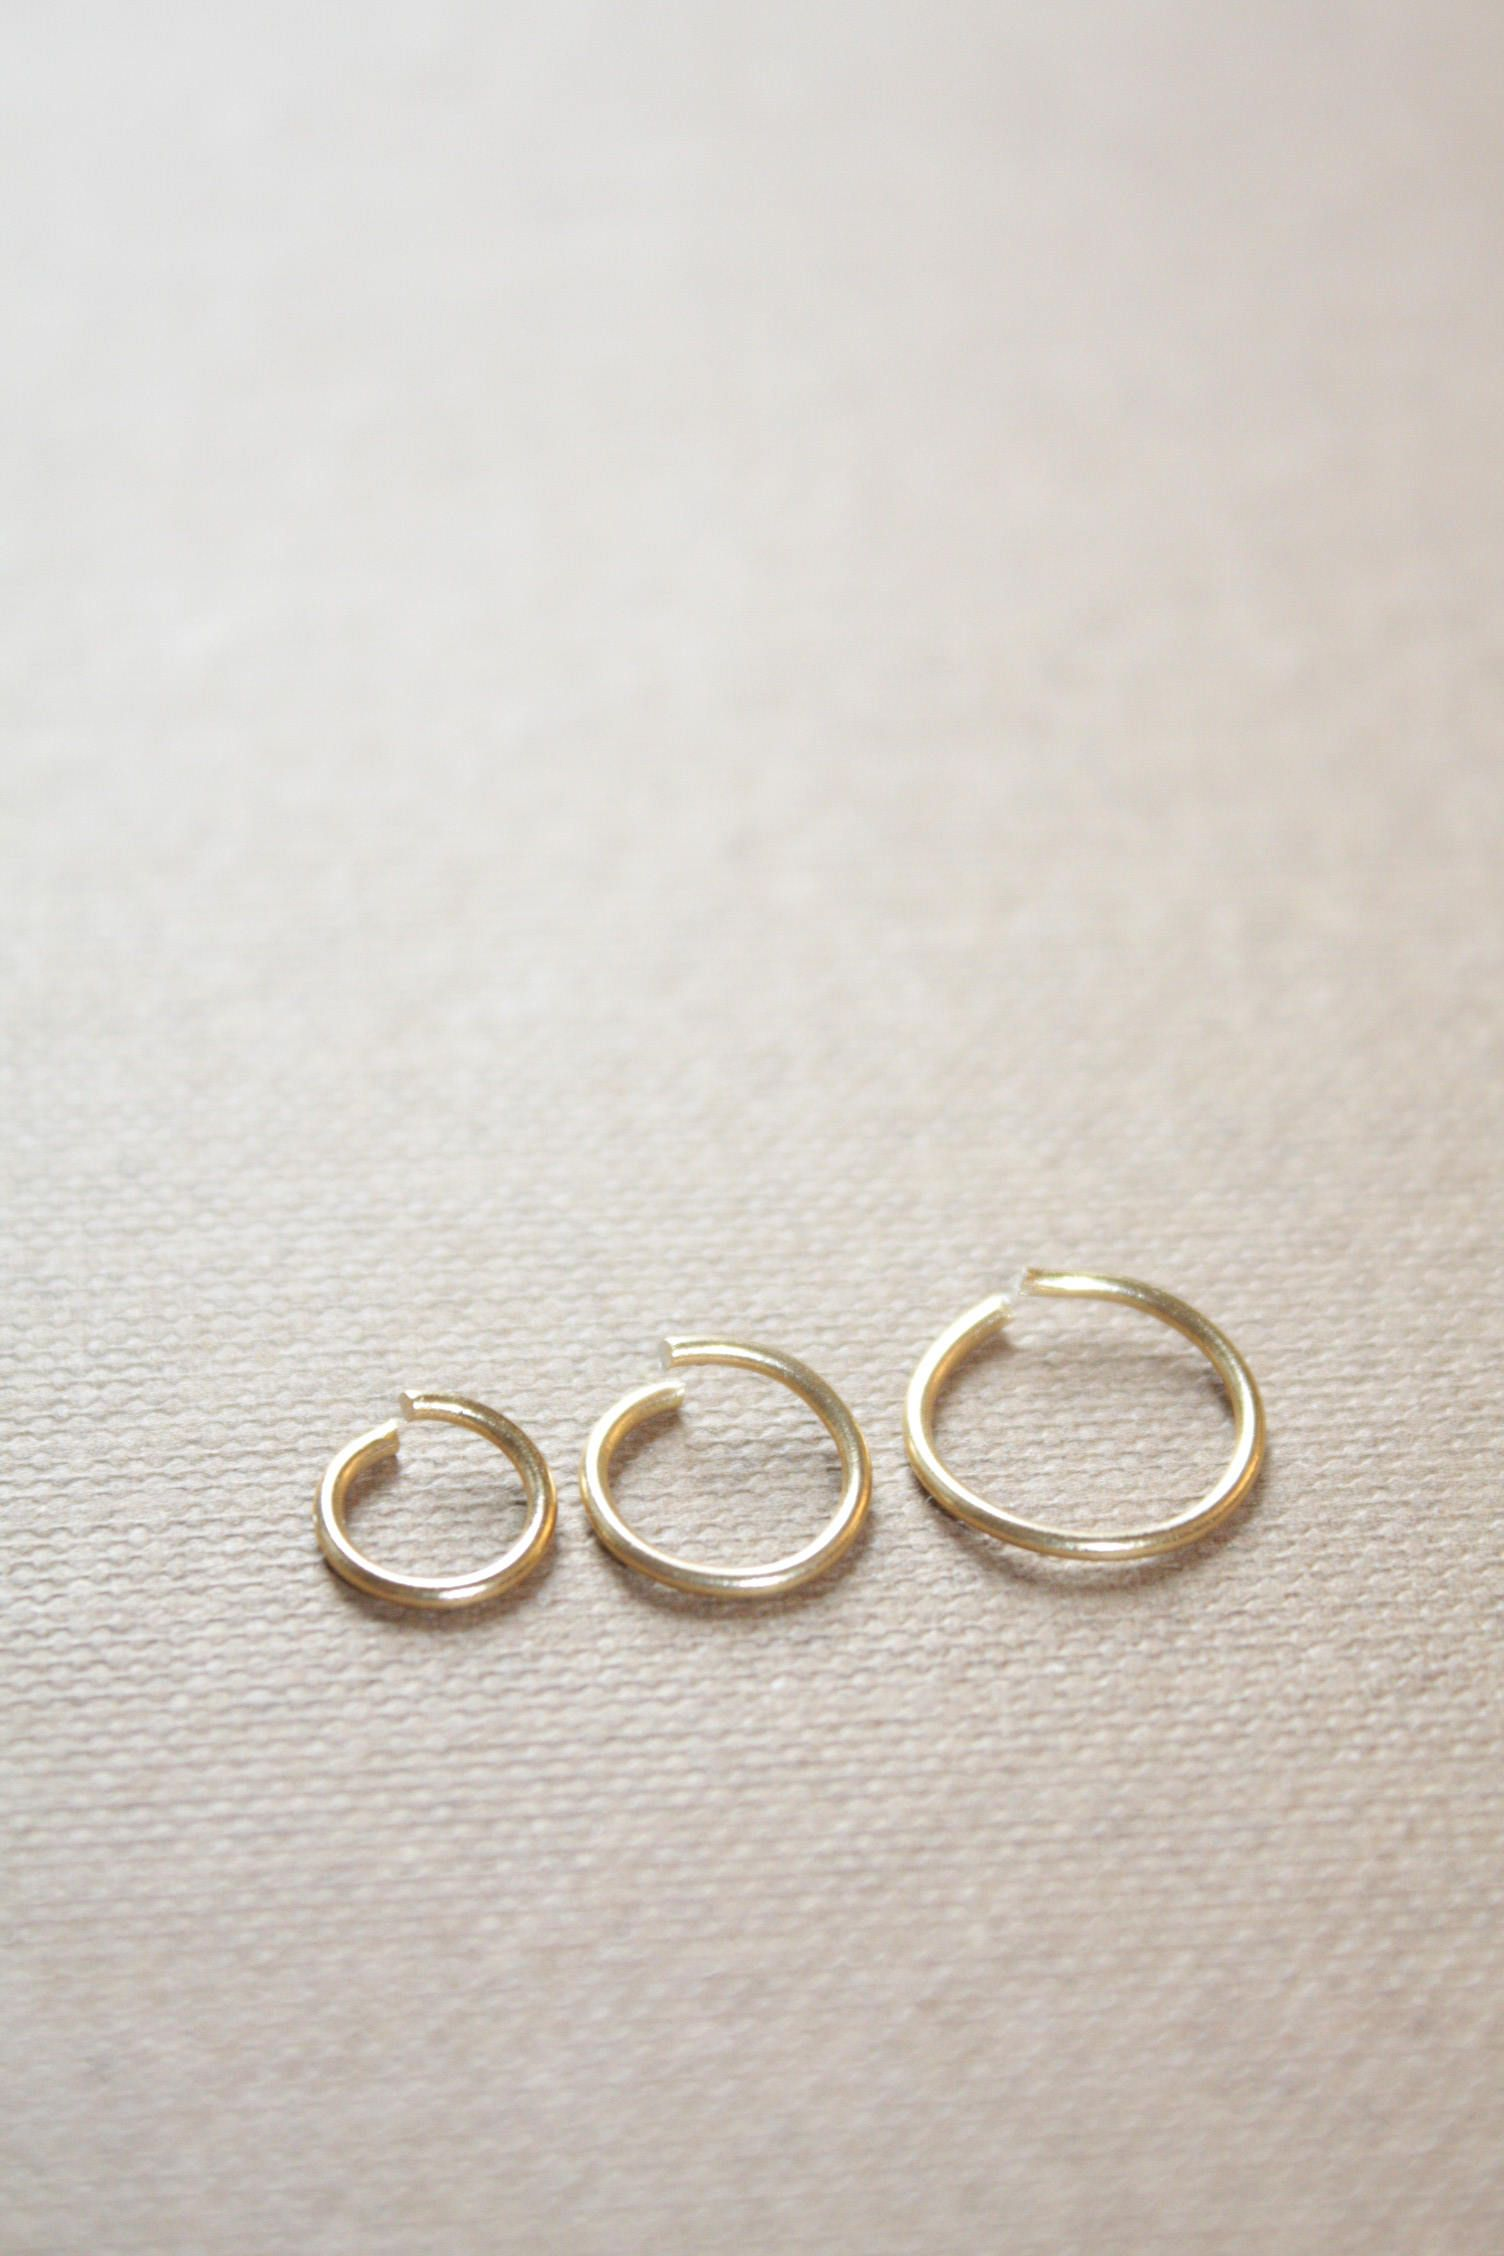 Small Gold Hoop Earring 22k Gold Nose Ring Hoop Gold Cartilage